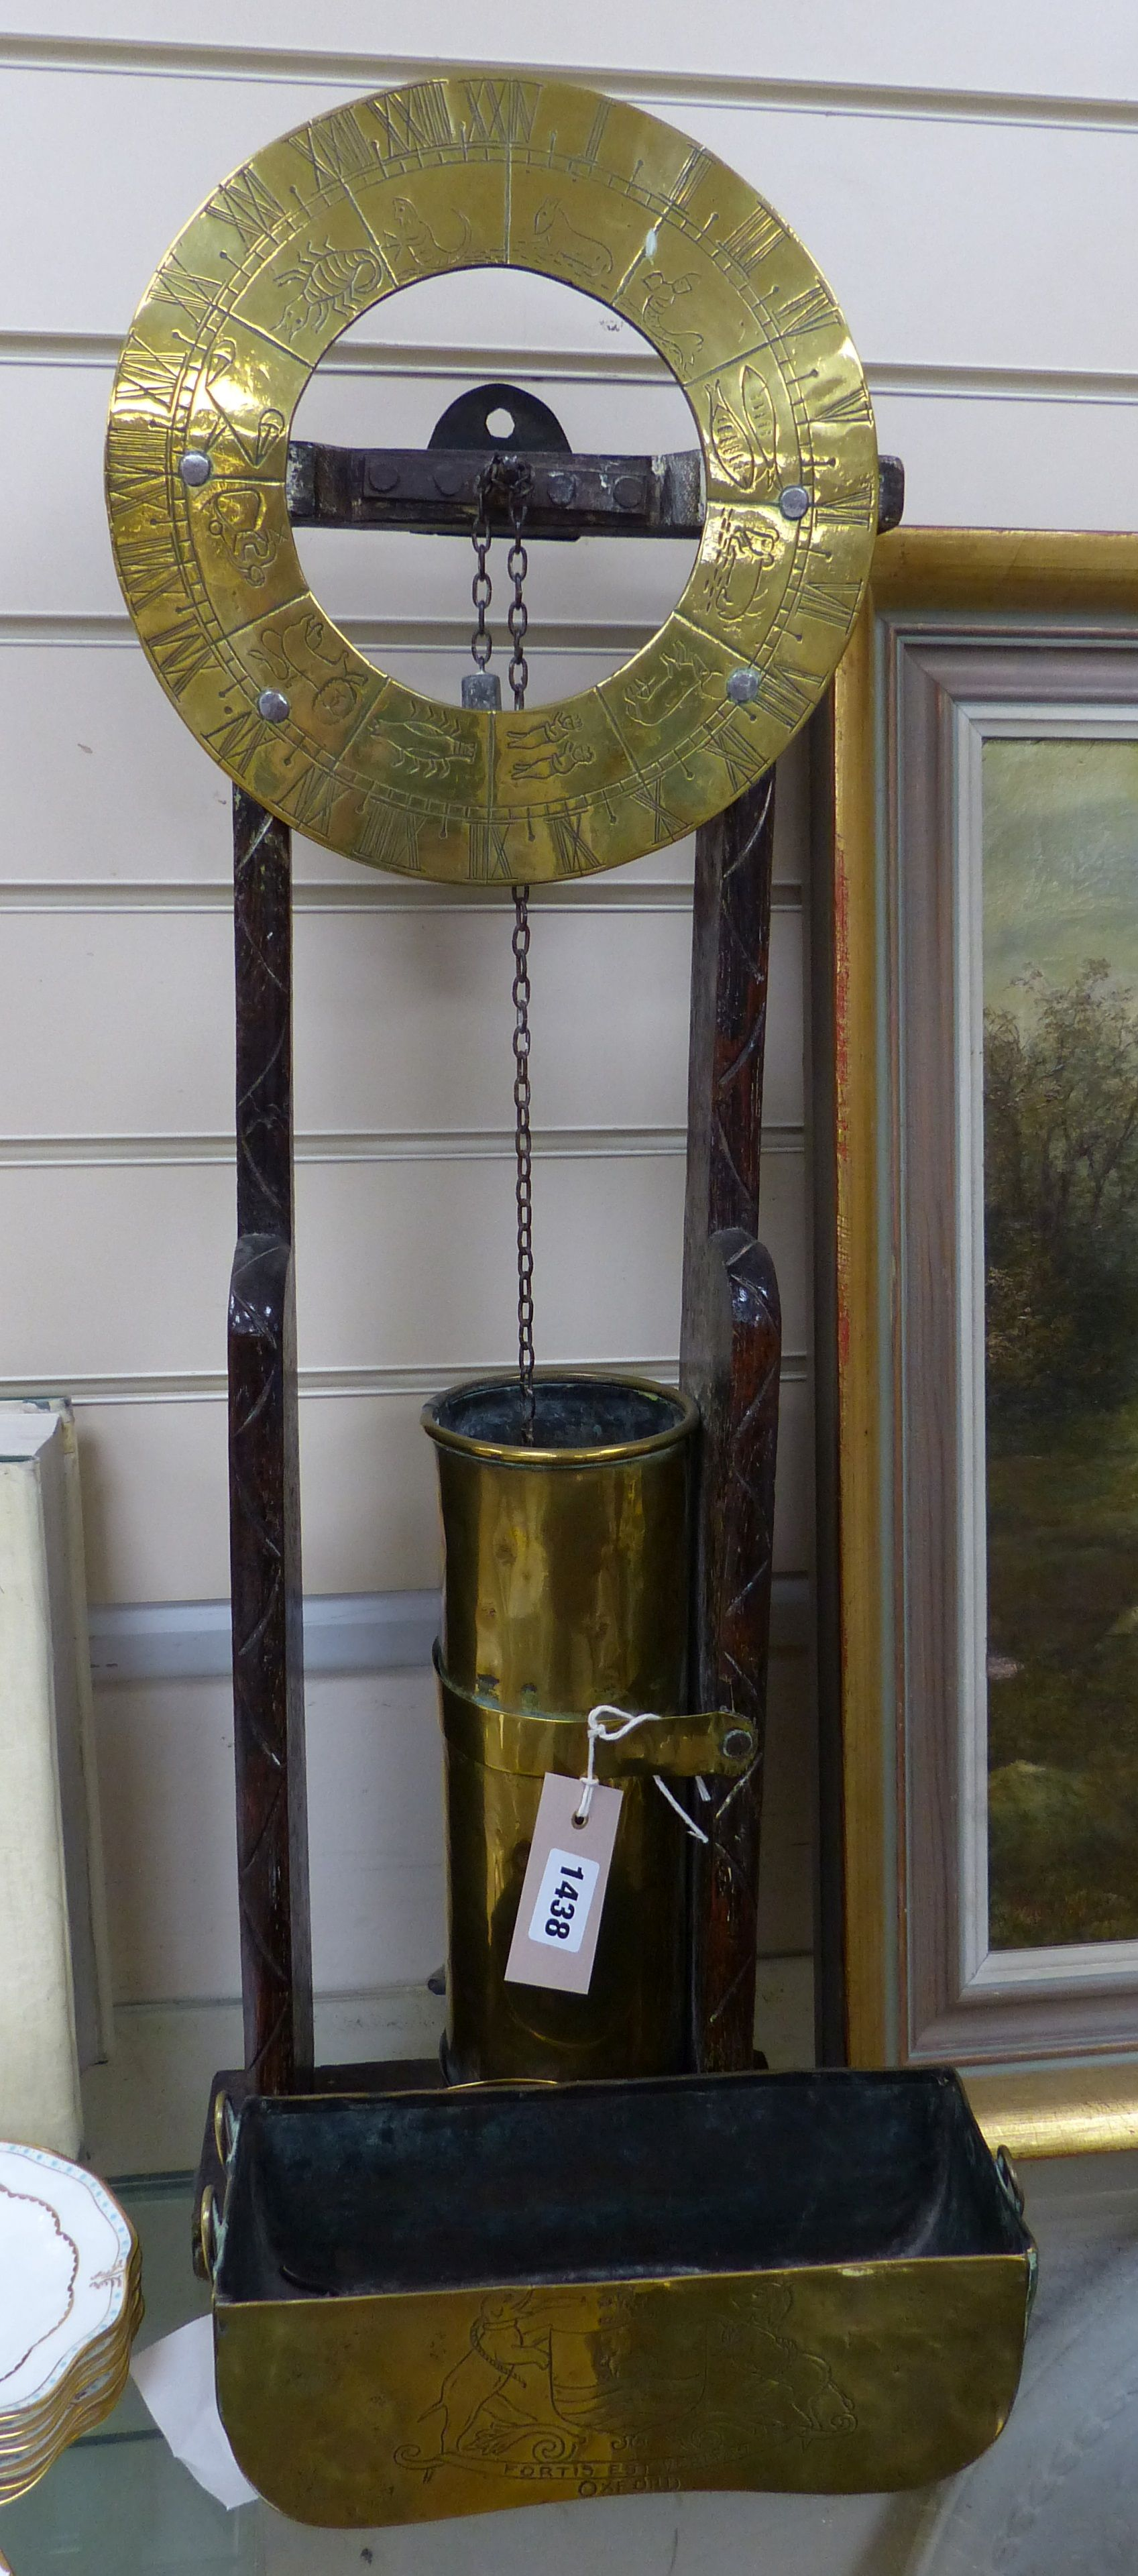 A 17th century style oak and brass 'Clepsydra' or water clock,having engraved chapter ring, water